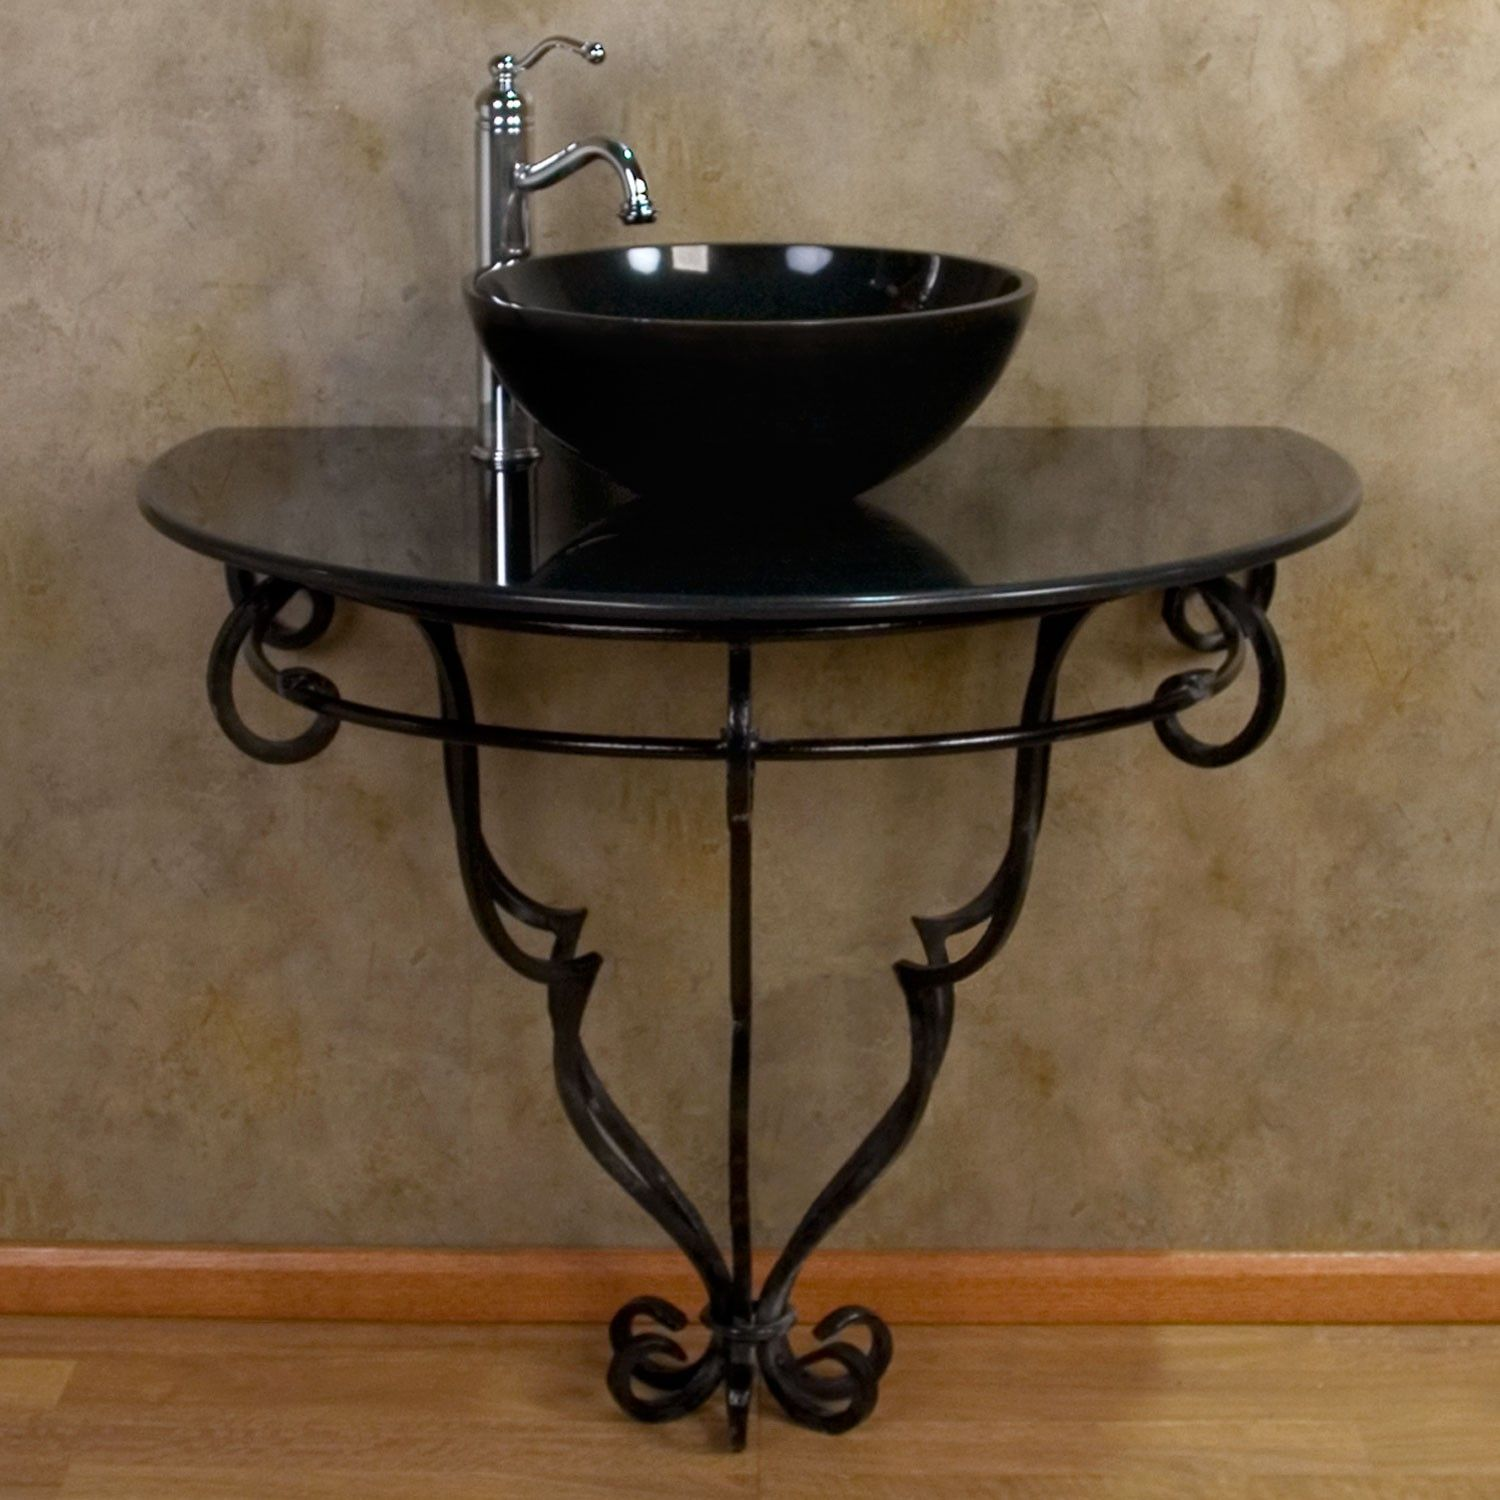 Wall Mount Wrought Iron Console Vanity for Vessel Sink Granite